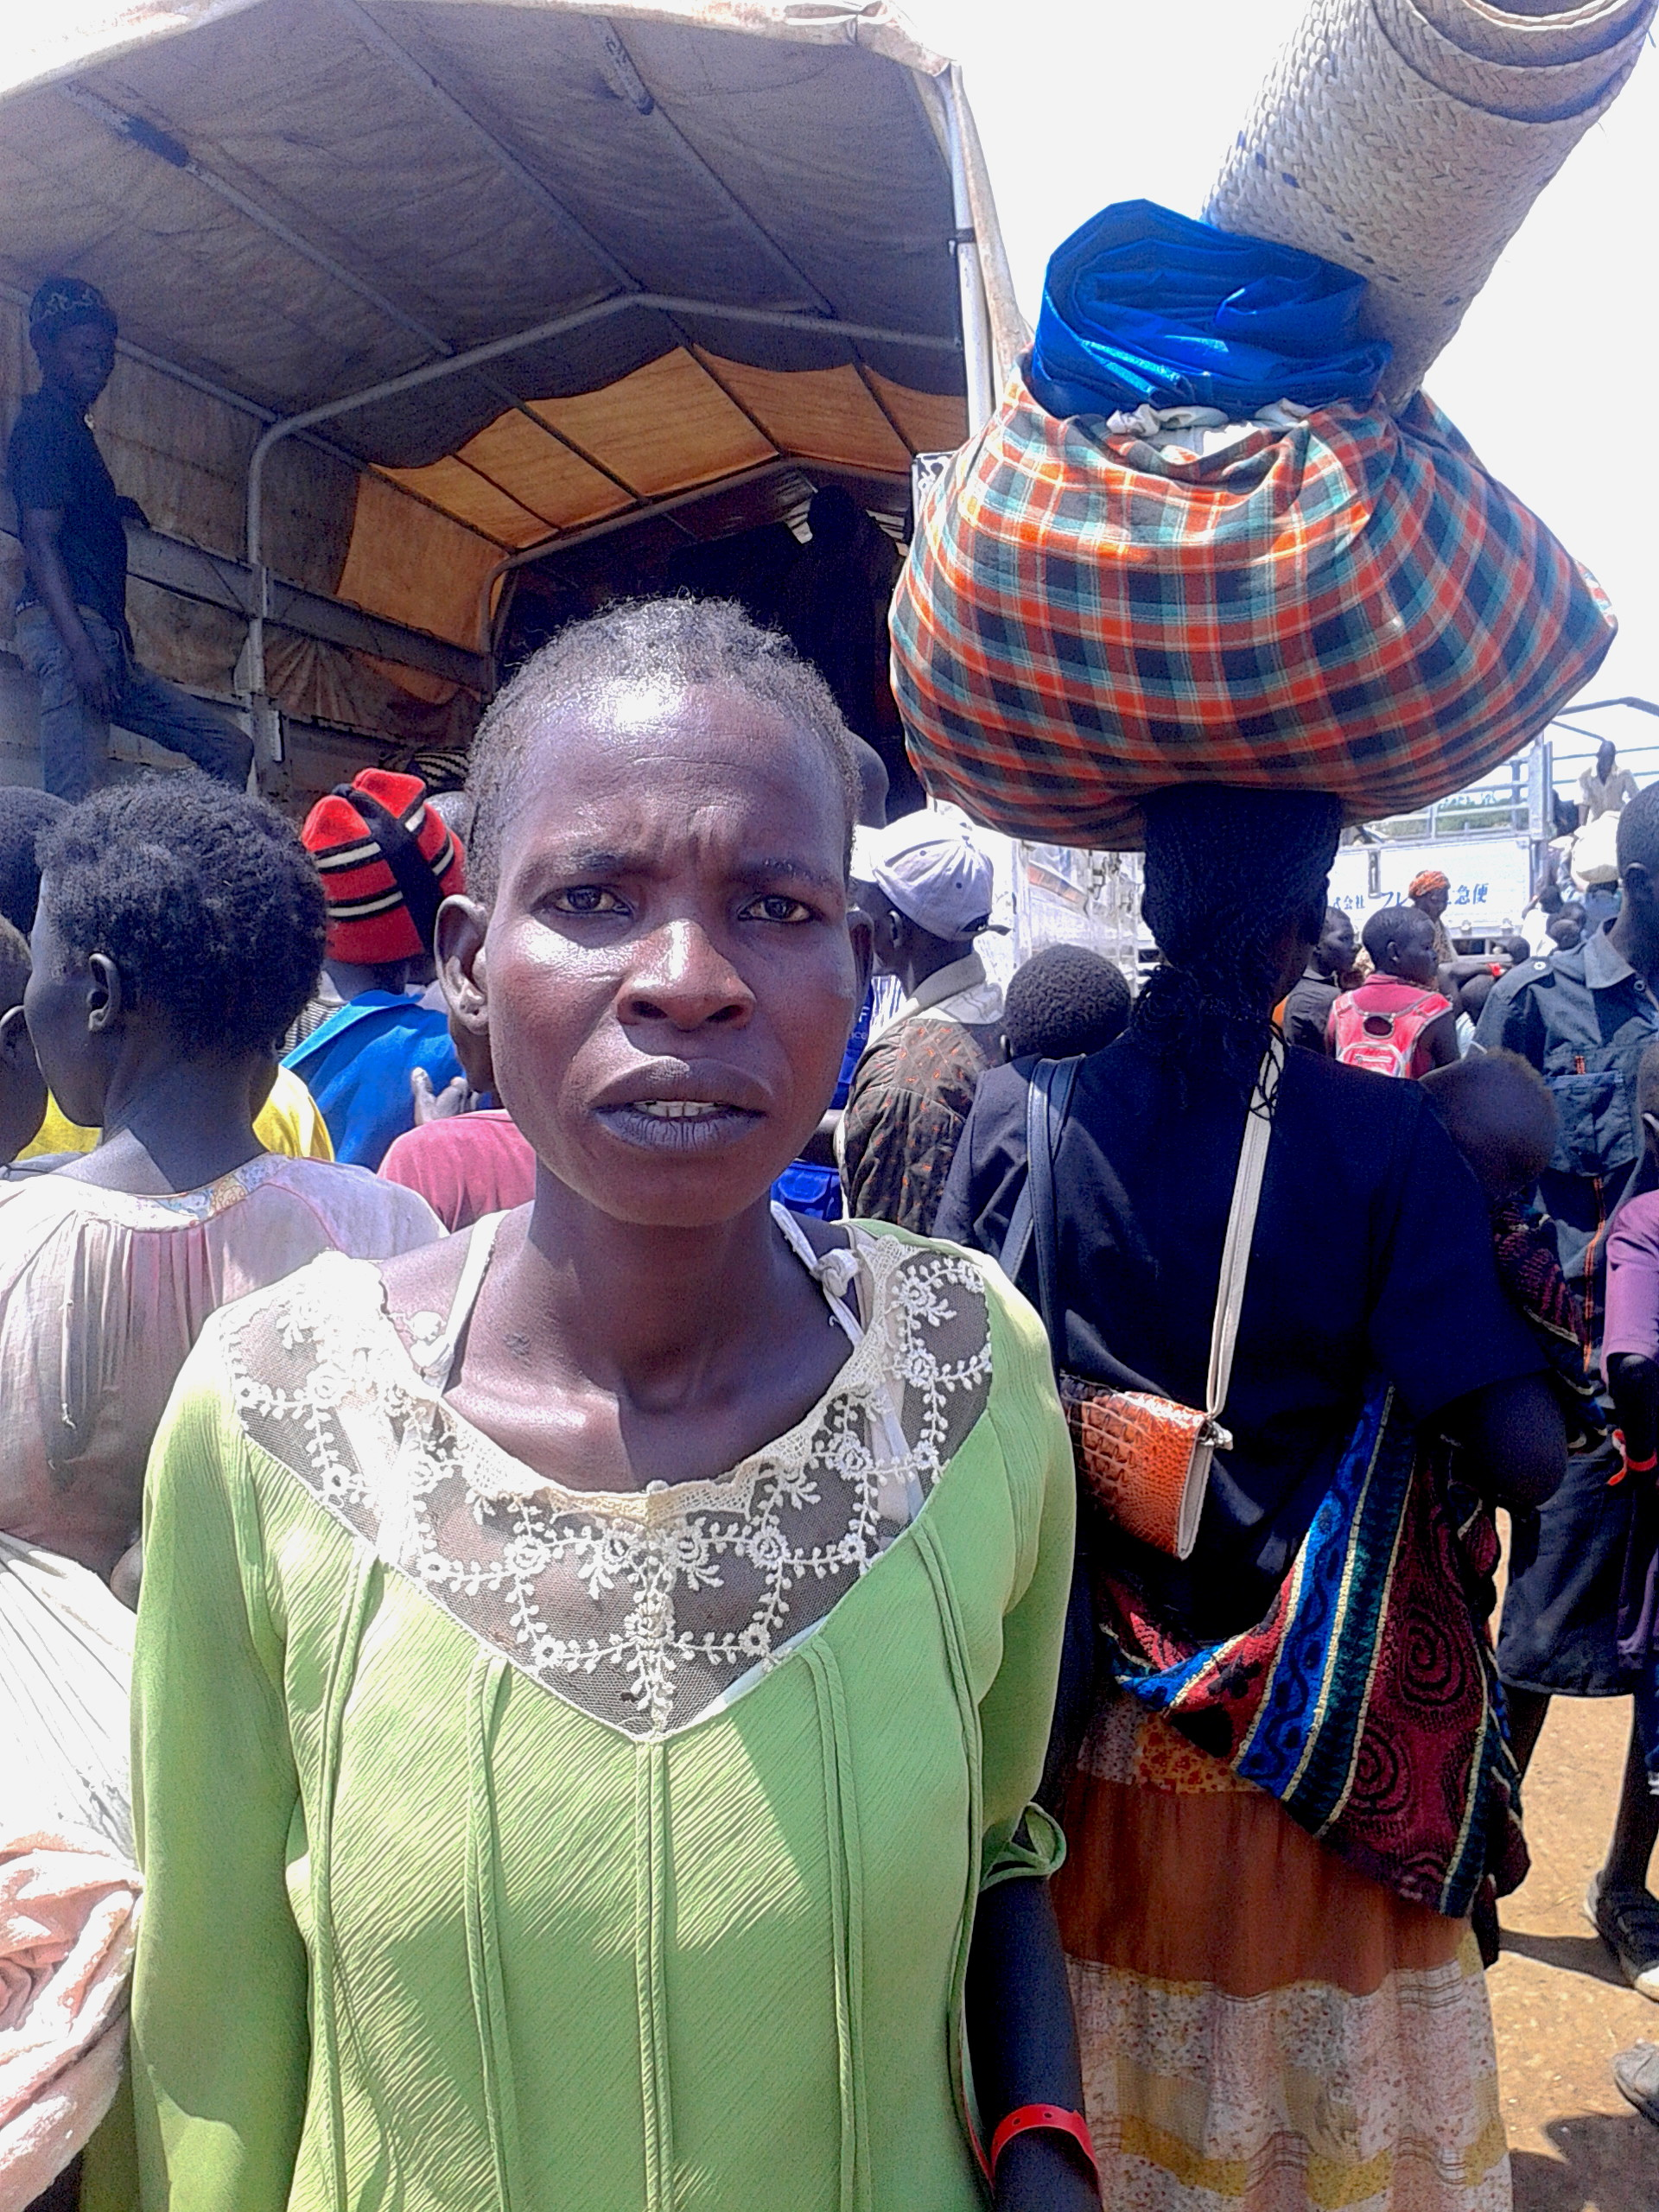 Susan Keji's husband and children were killed in Juba